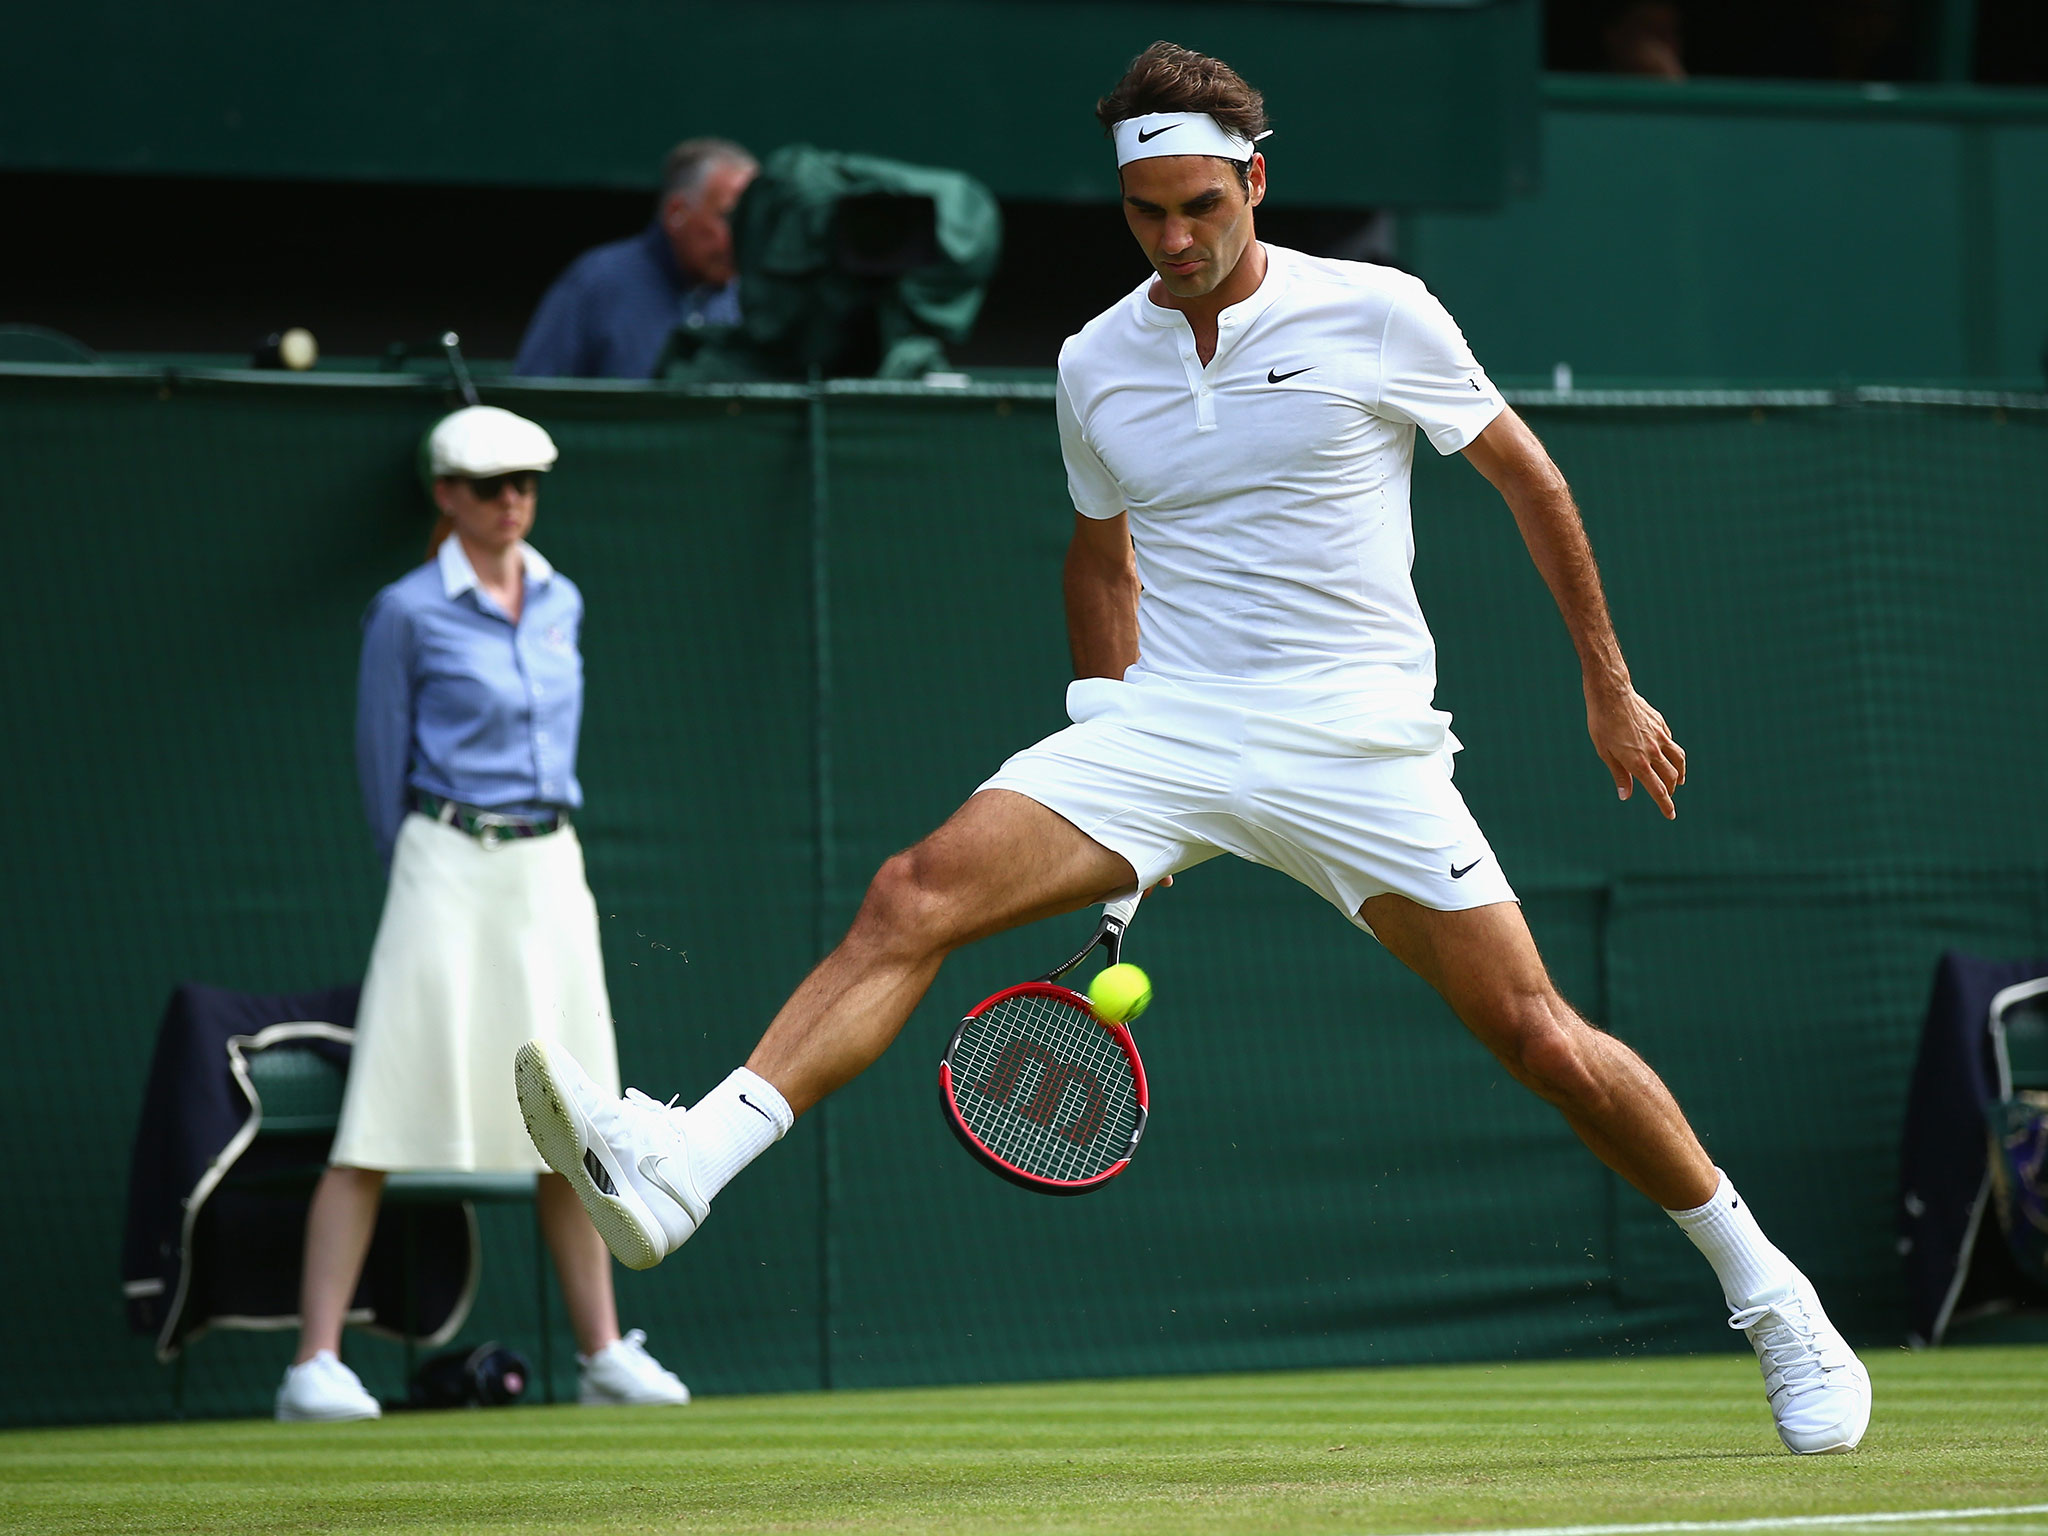 Tennis: Roger Federer wins his 18th grass-court title with a win over Milos Raonic at the Mercedes Cup in Stuttgart.